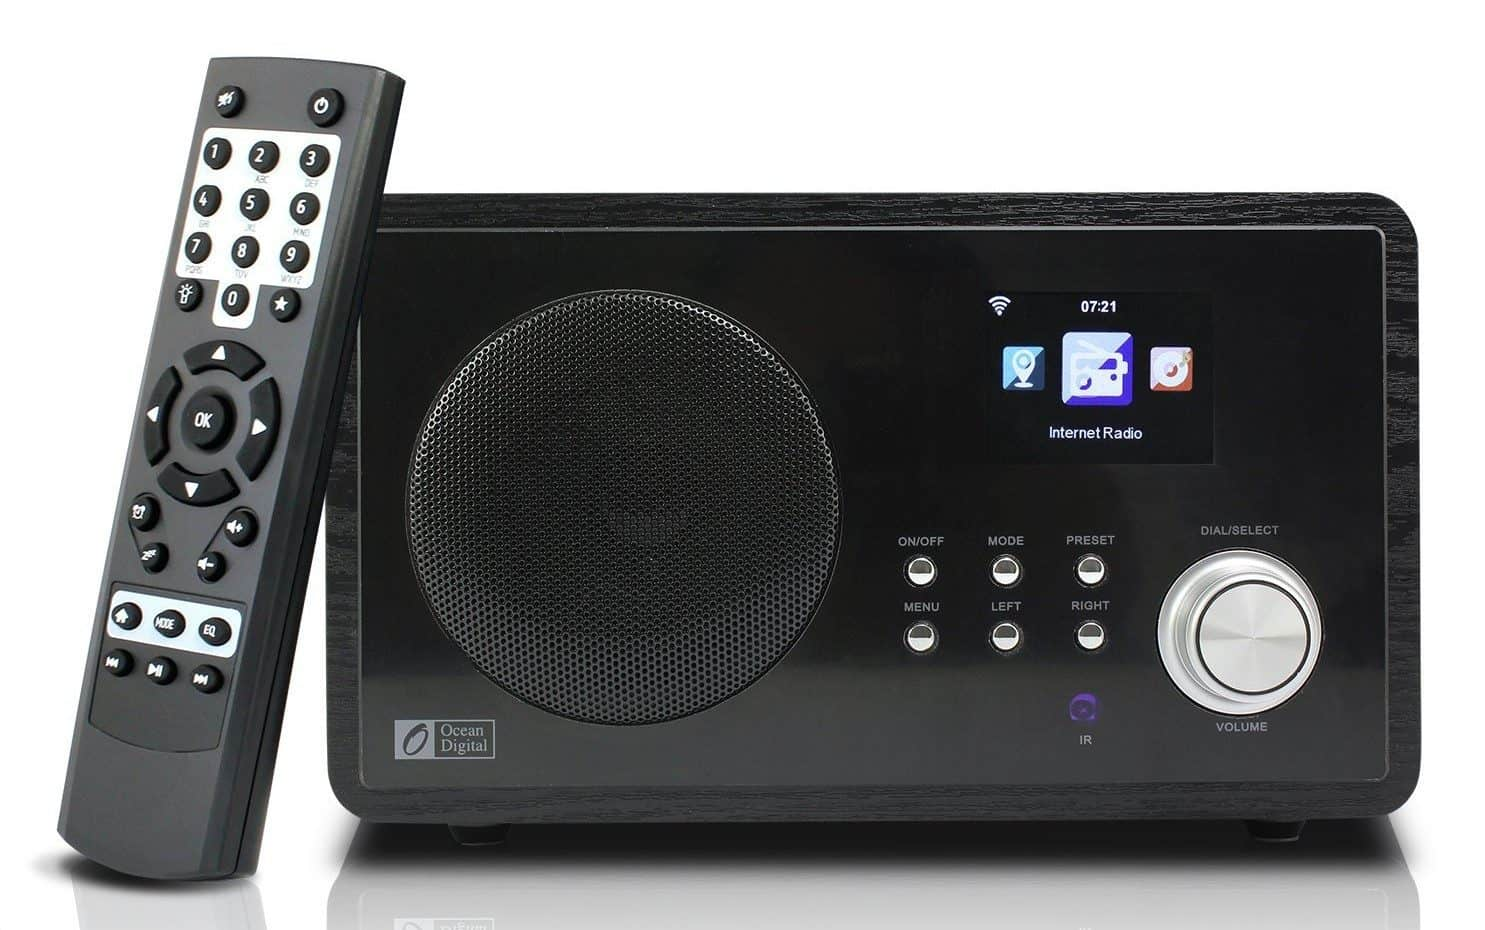 Ocean Digital WiFi Internet Radio WR60